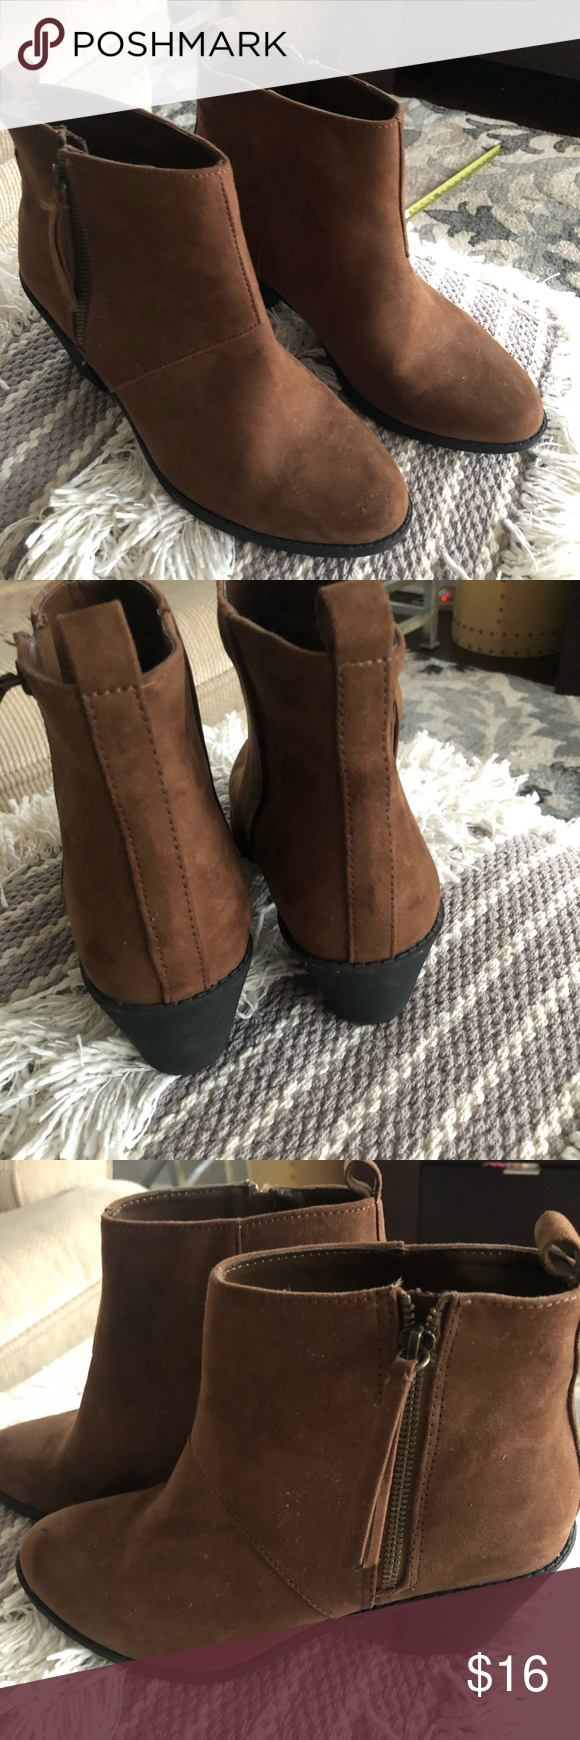 Forever 21 faux suede ankle boots in